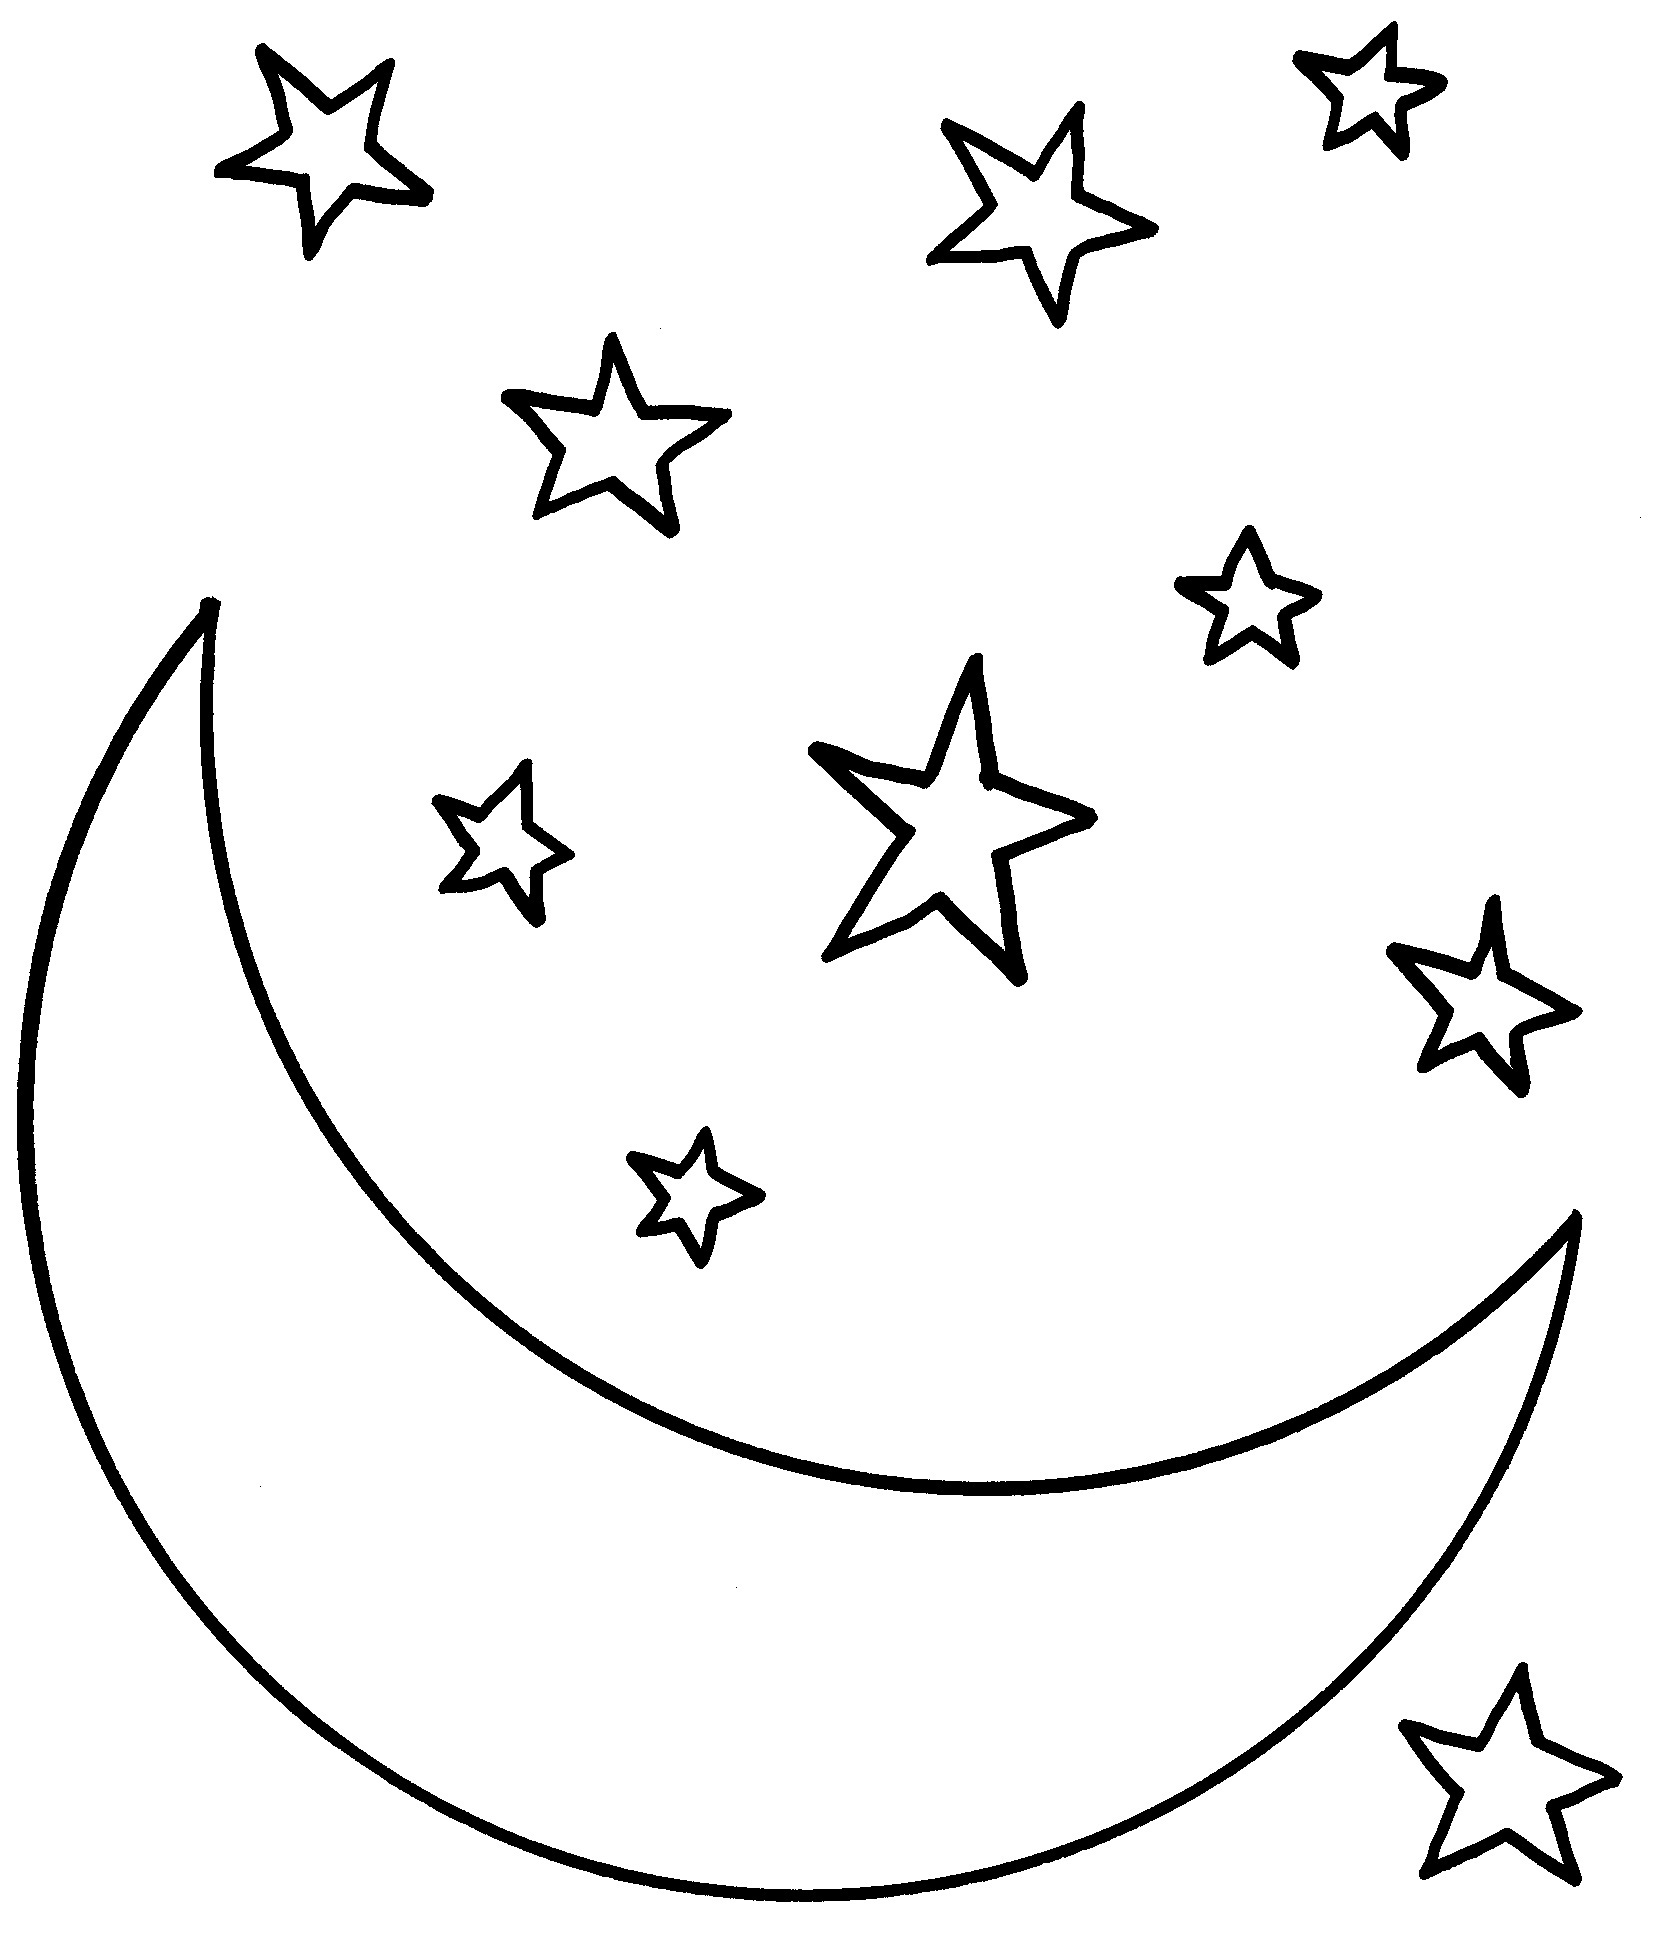 Free coloring pages for 4 year olds - Colouring In Pages For 4 Year Olds Star Coloring Sheets